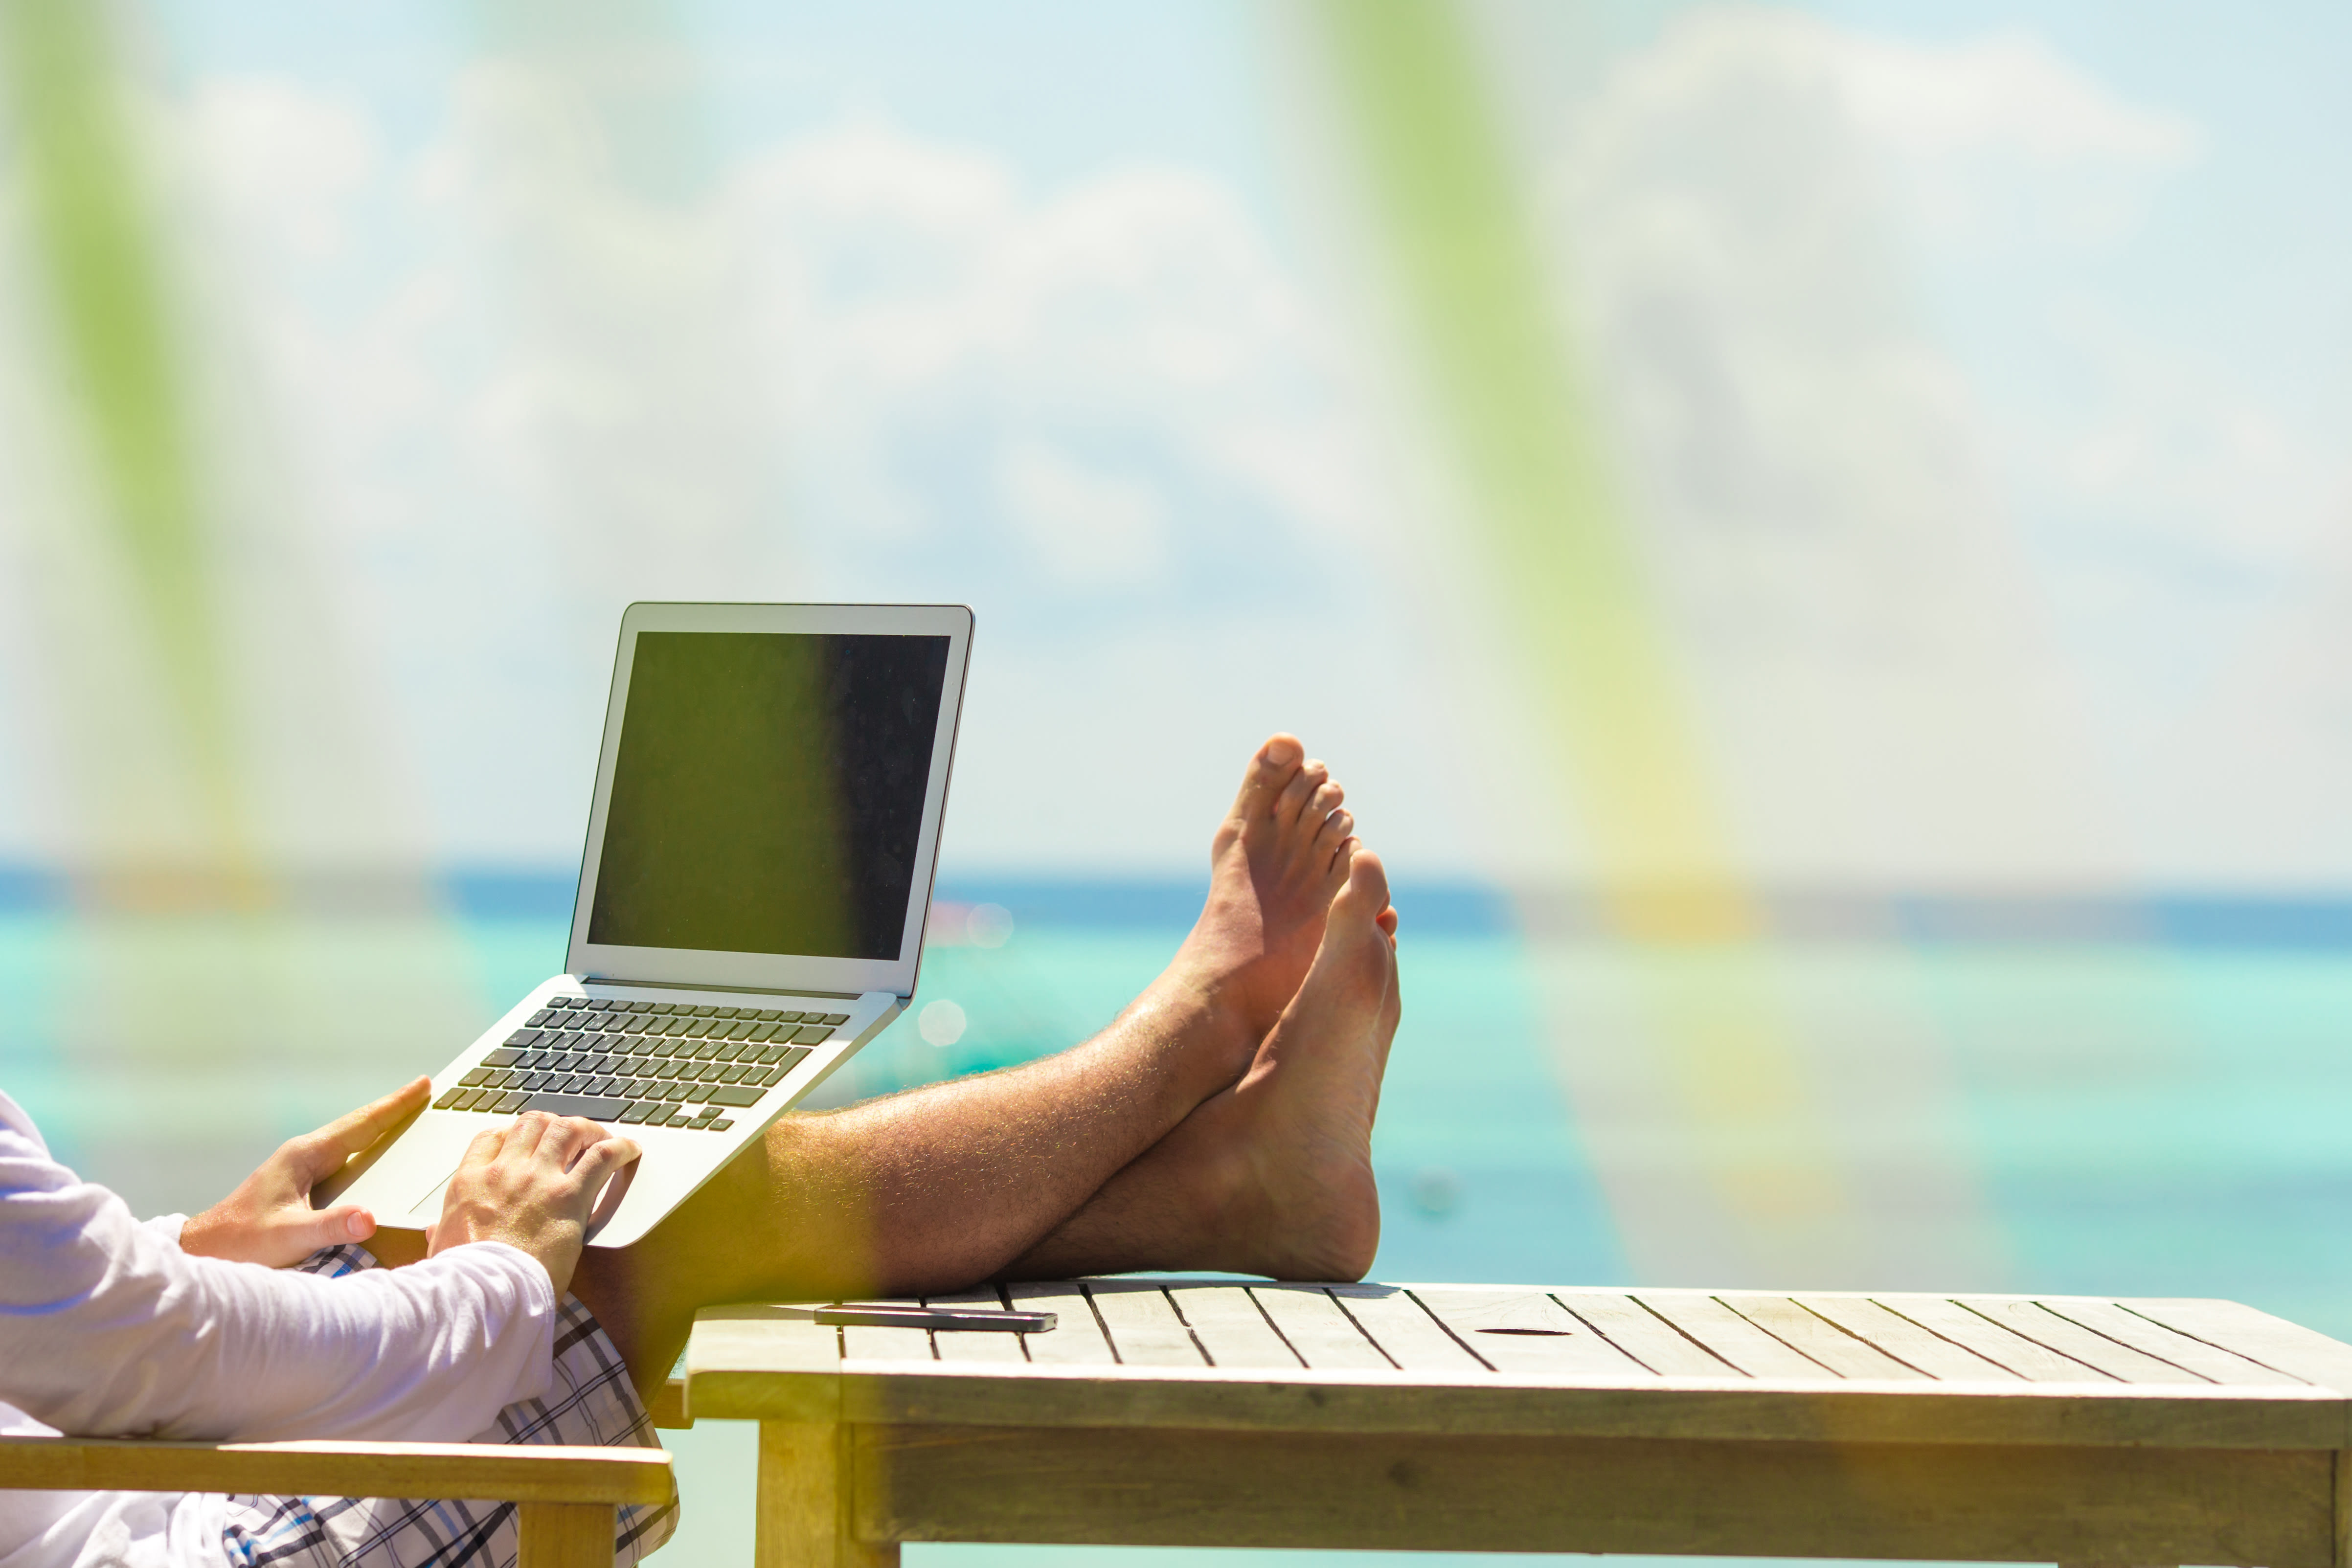 The list of countries where travelers can go live and work remotely is growing